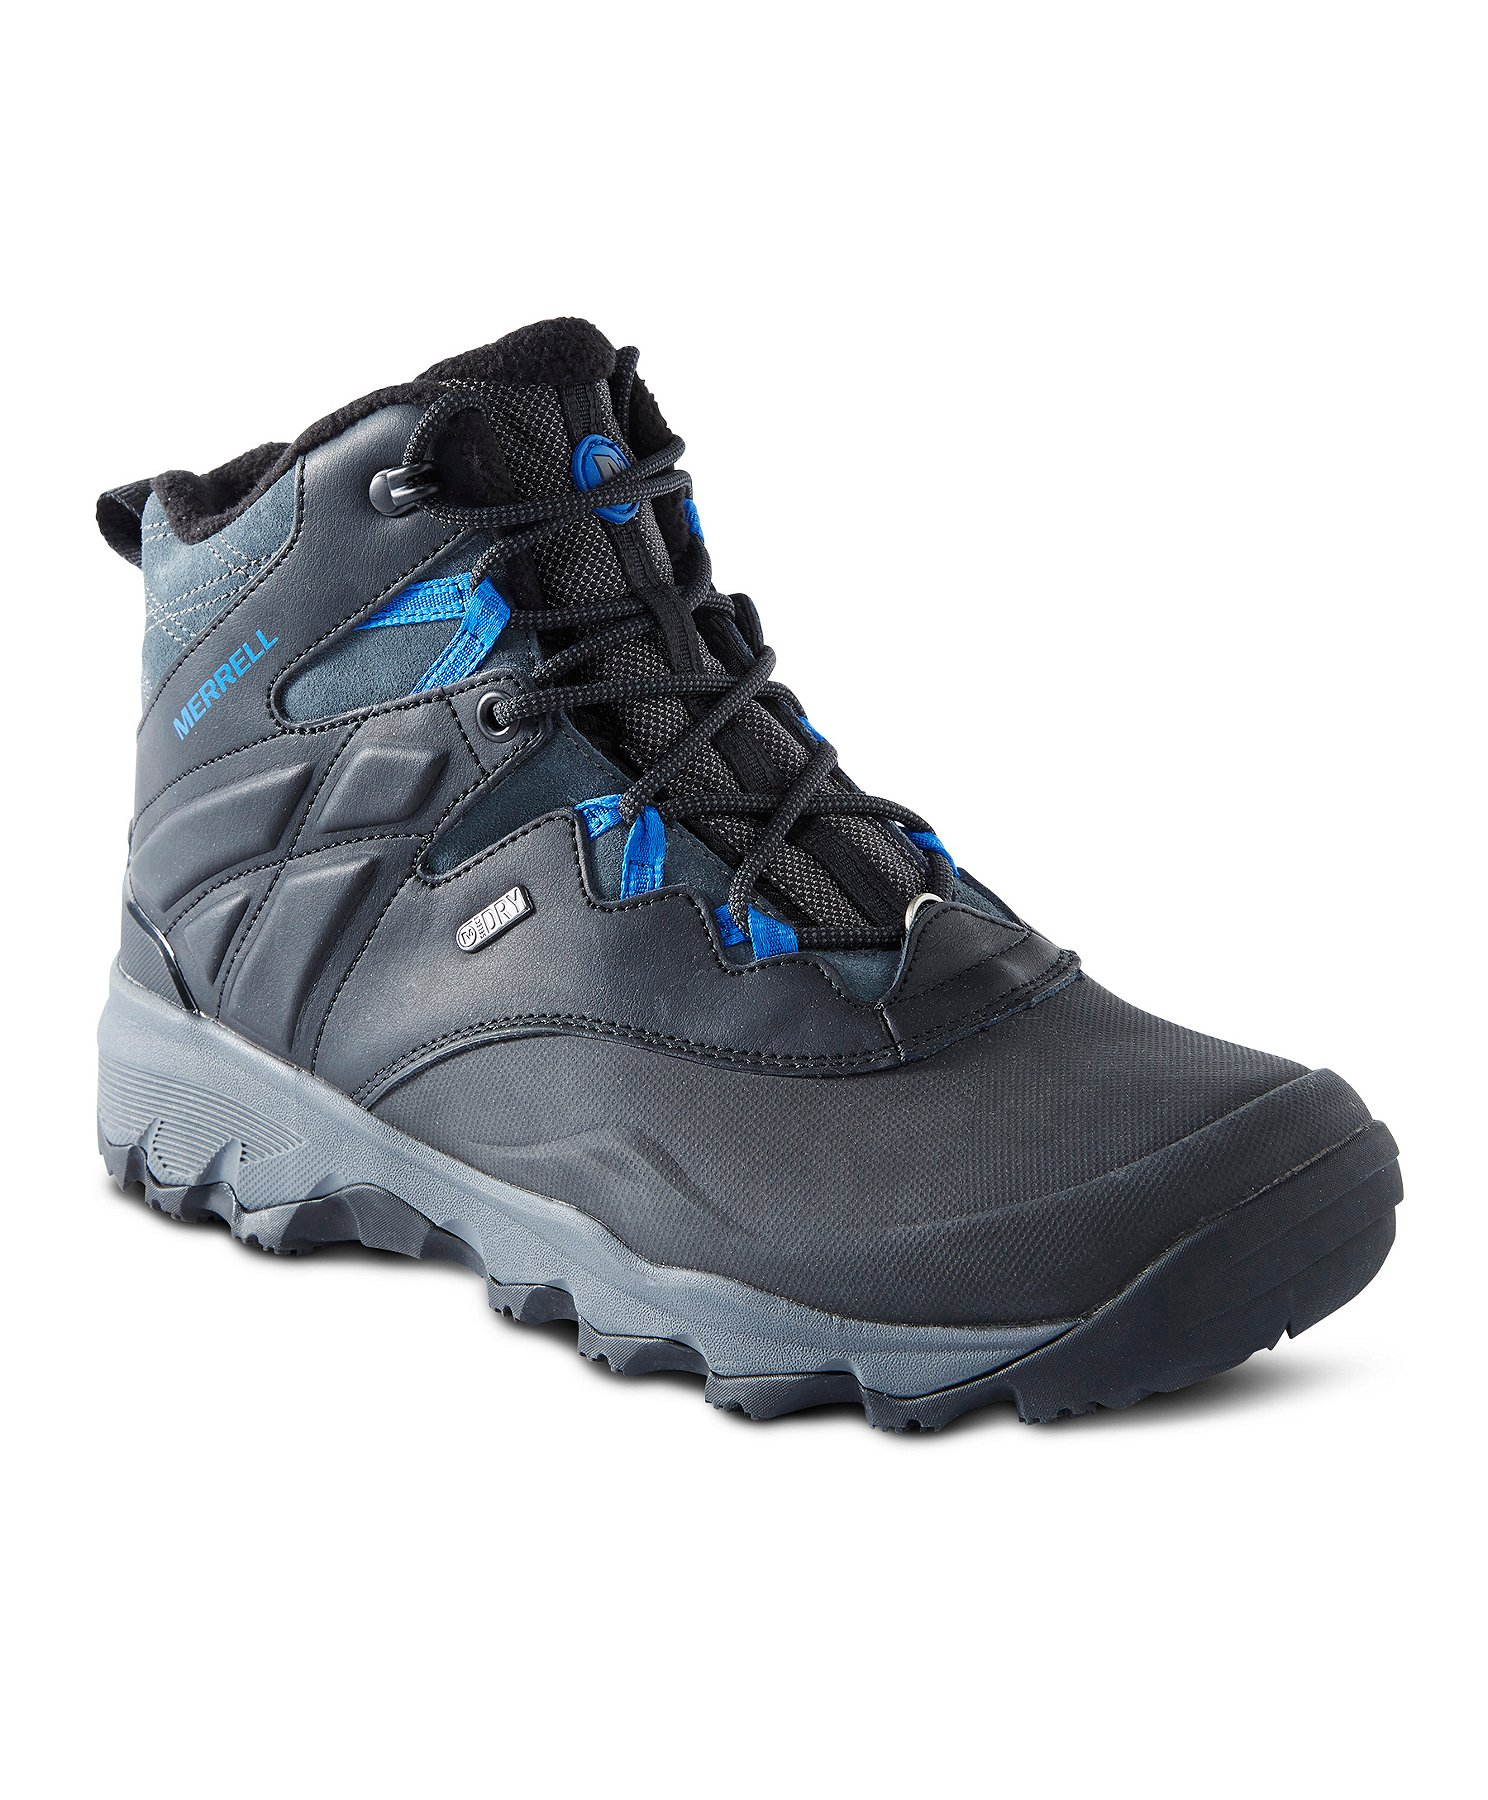 famous brand wholesale online highly praised Men's Thermo Adventure Waterproof Winter Boots with Vibram Arctic Grip